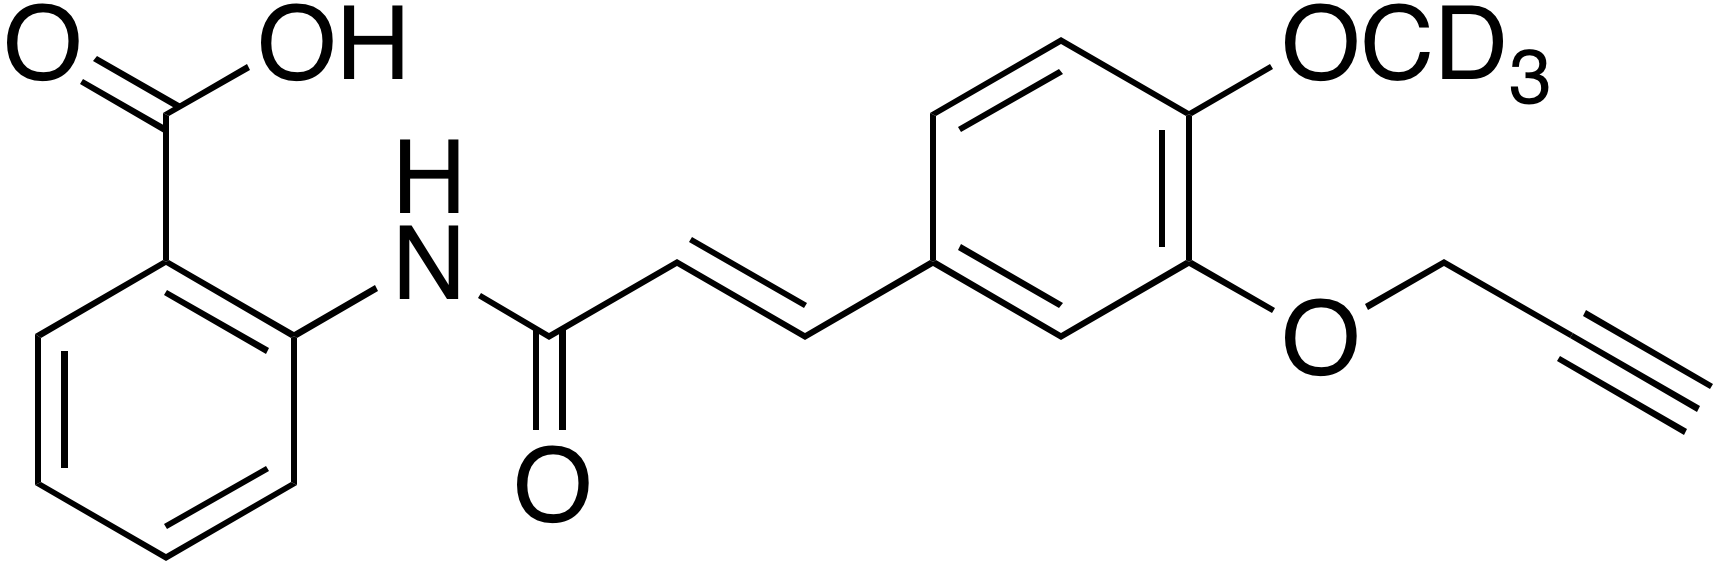 4-Methoxy-d<sub>3</sub>-3-propargyloxycinnamoyl anthranilate